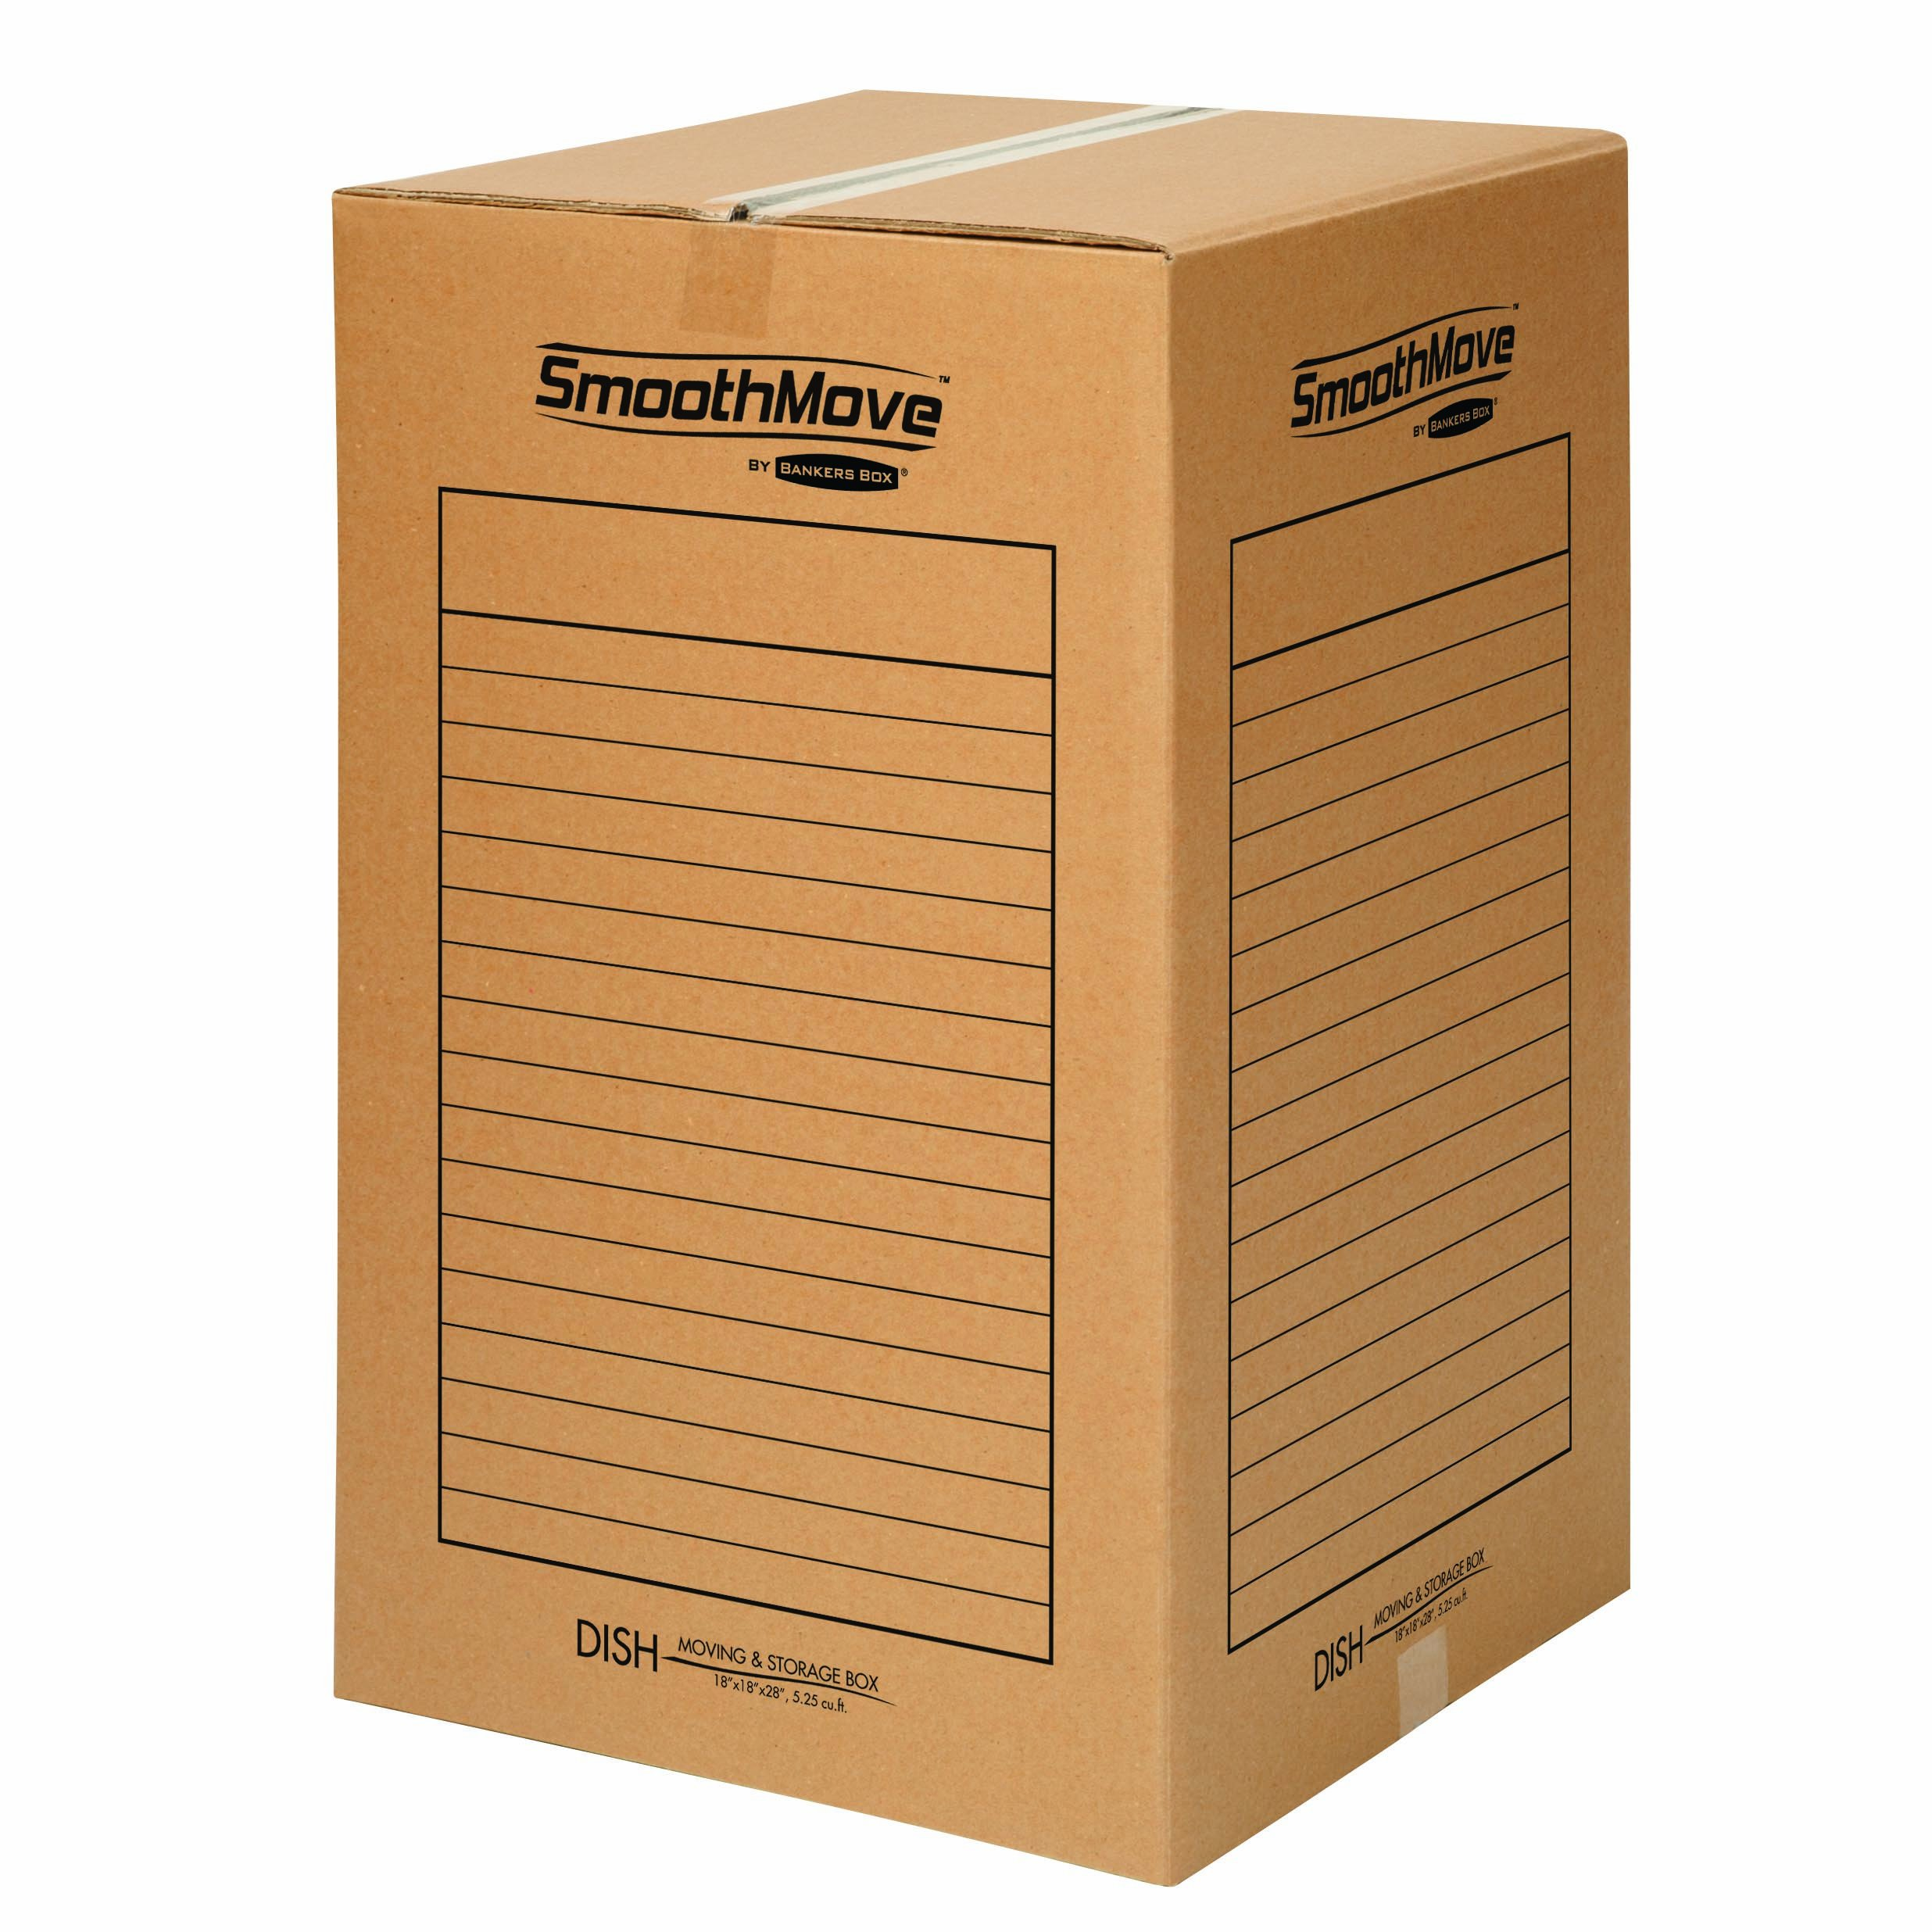 Bankers Box SmoothMove DishPack Moving Boxes and Packing Boxes With Double Wall Construction, 18 x 18 x 28 Inches, 4 Pack (7711101)